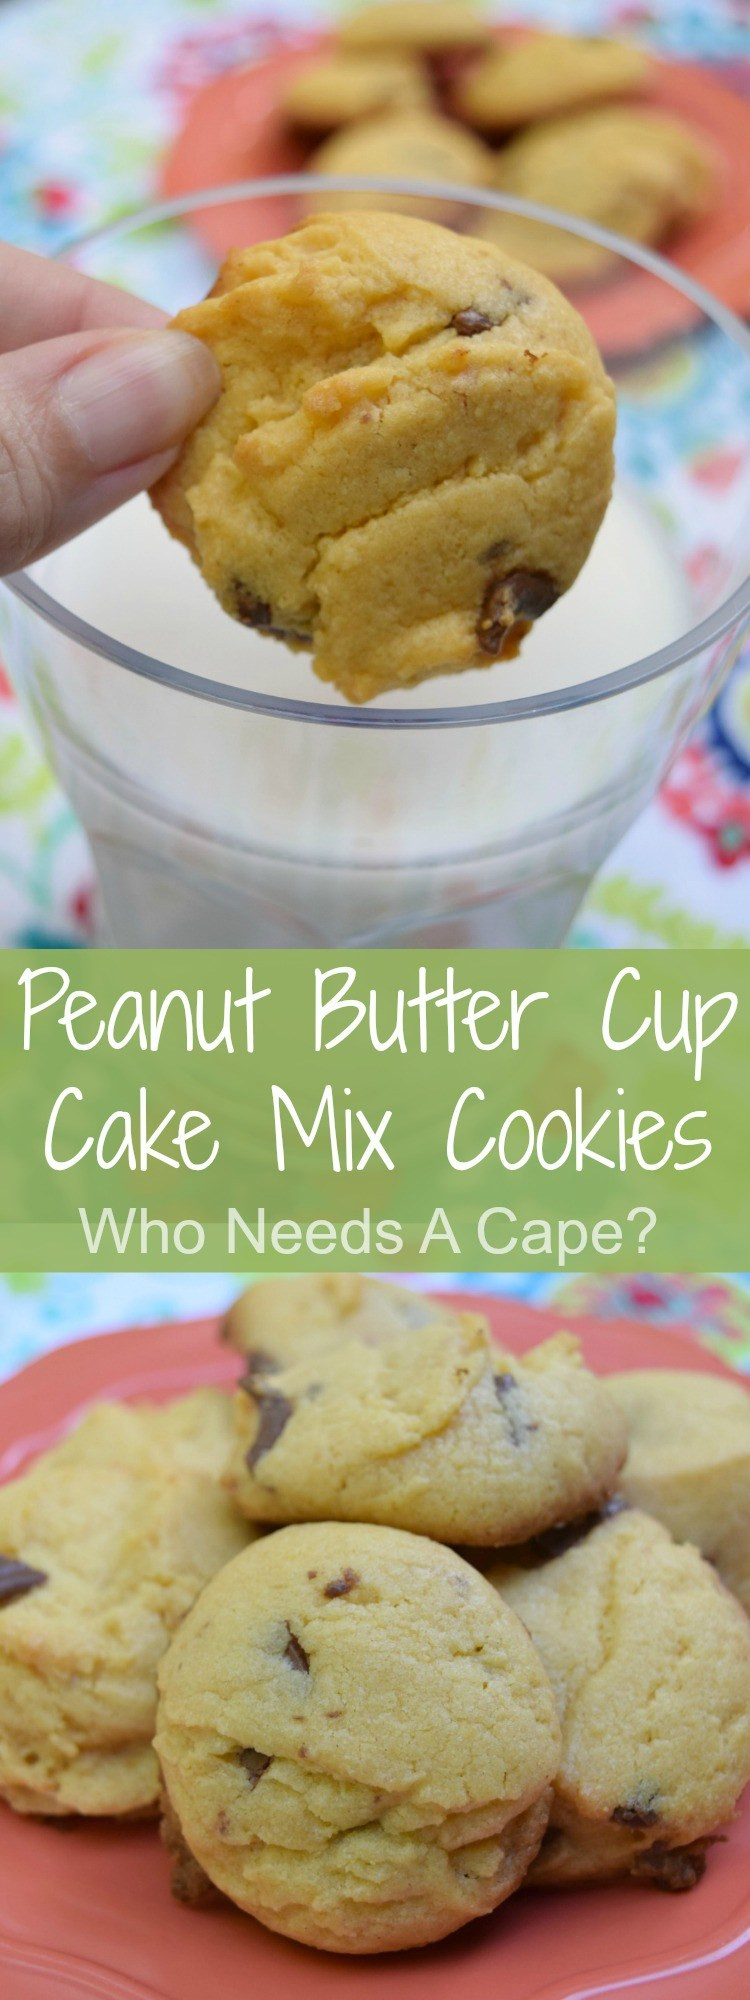 Cake Mix Cookies With Butter  Peanut Butter Cup Cake Mix Cookies Who Needs A Cape